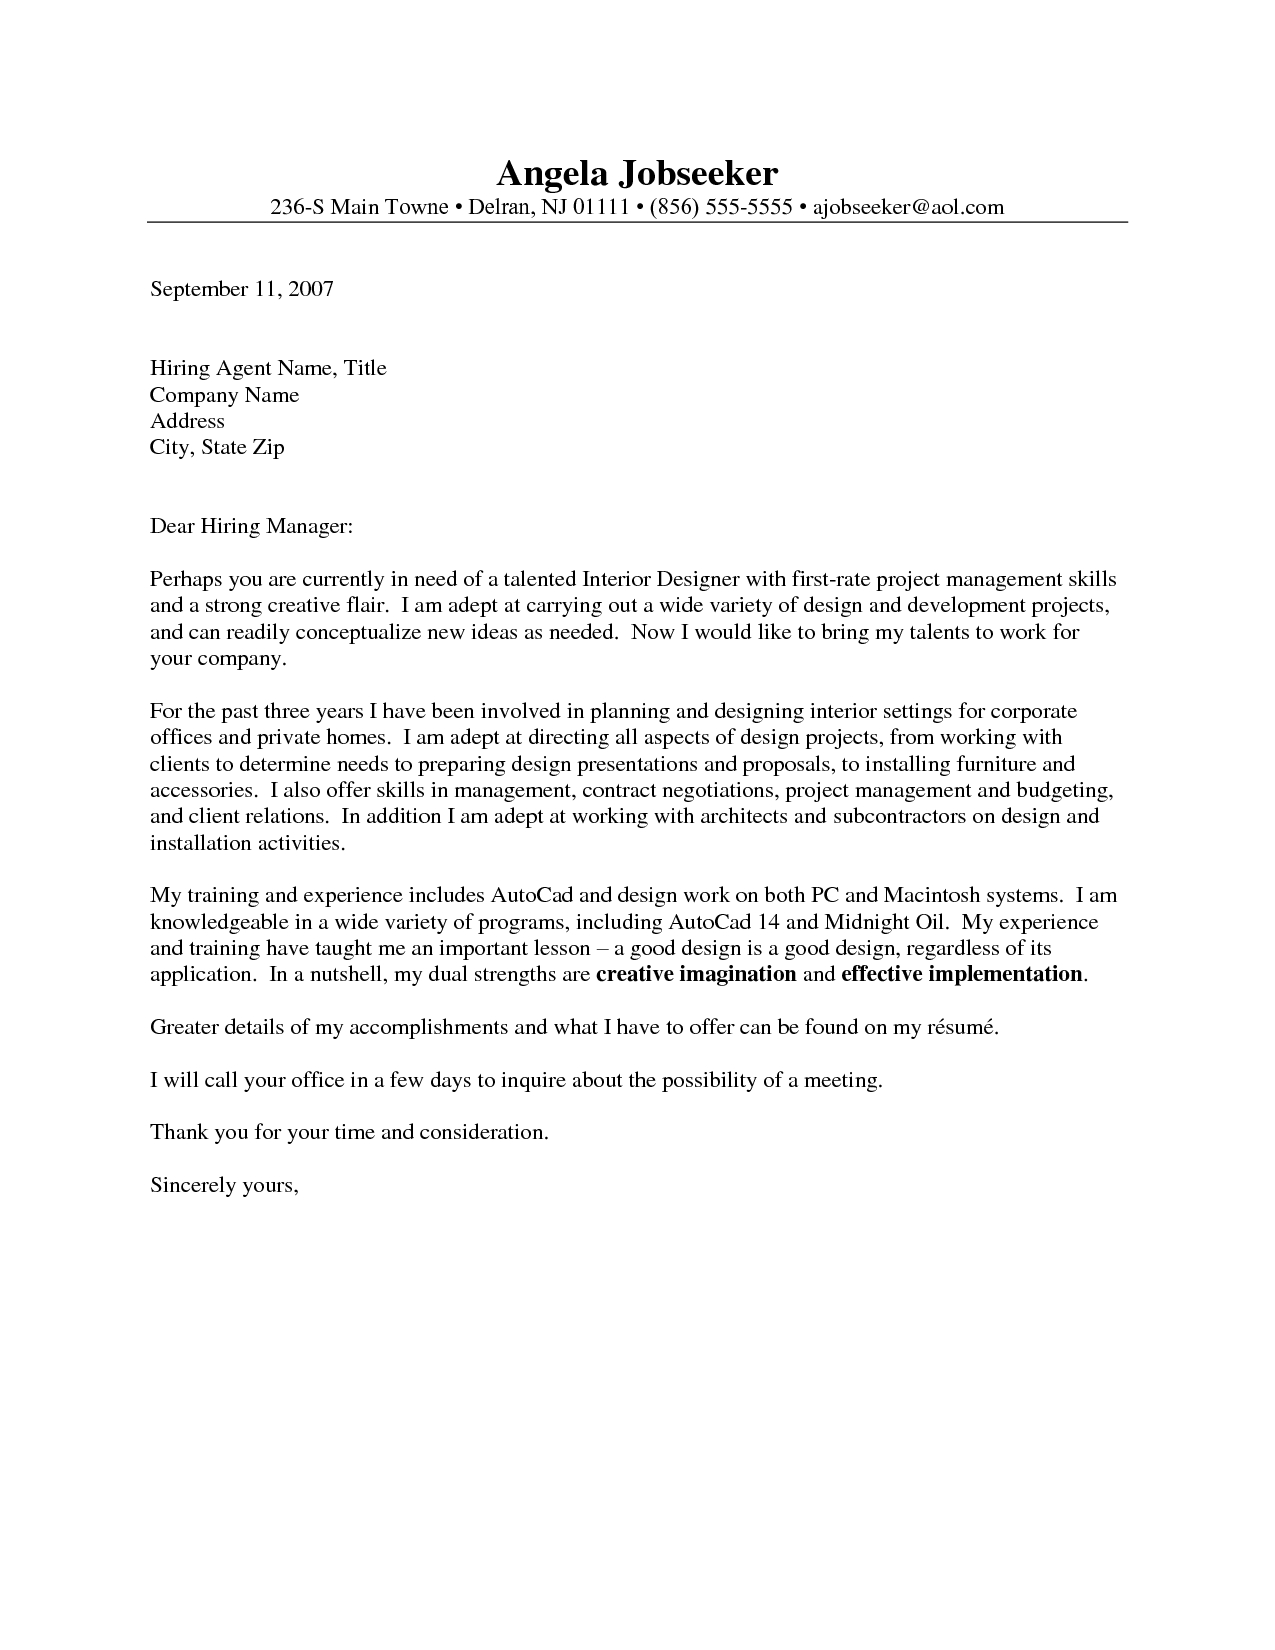 Short Cover Letter Template - Outstanding Cover Letter Examples